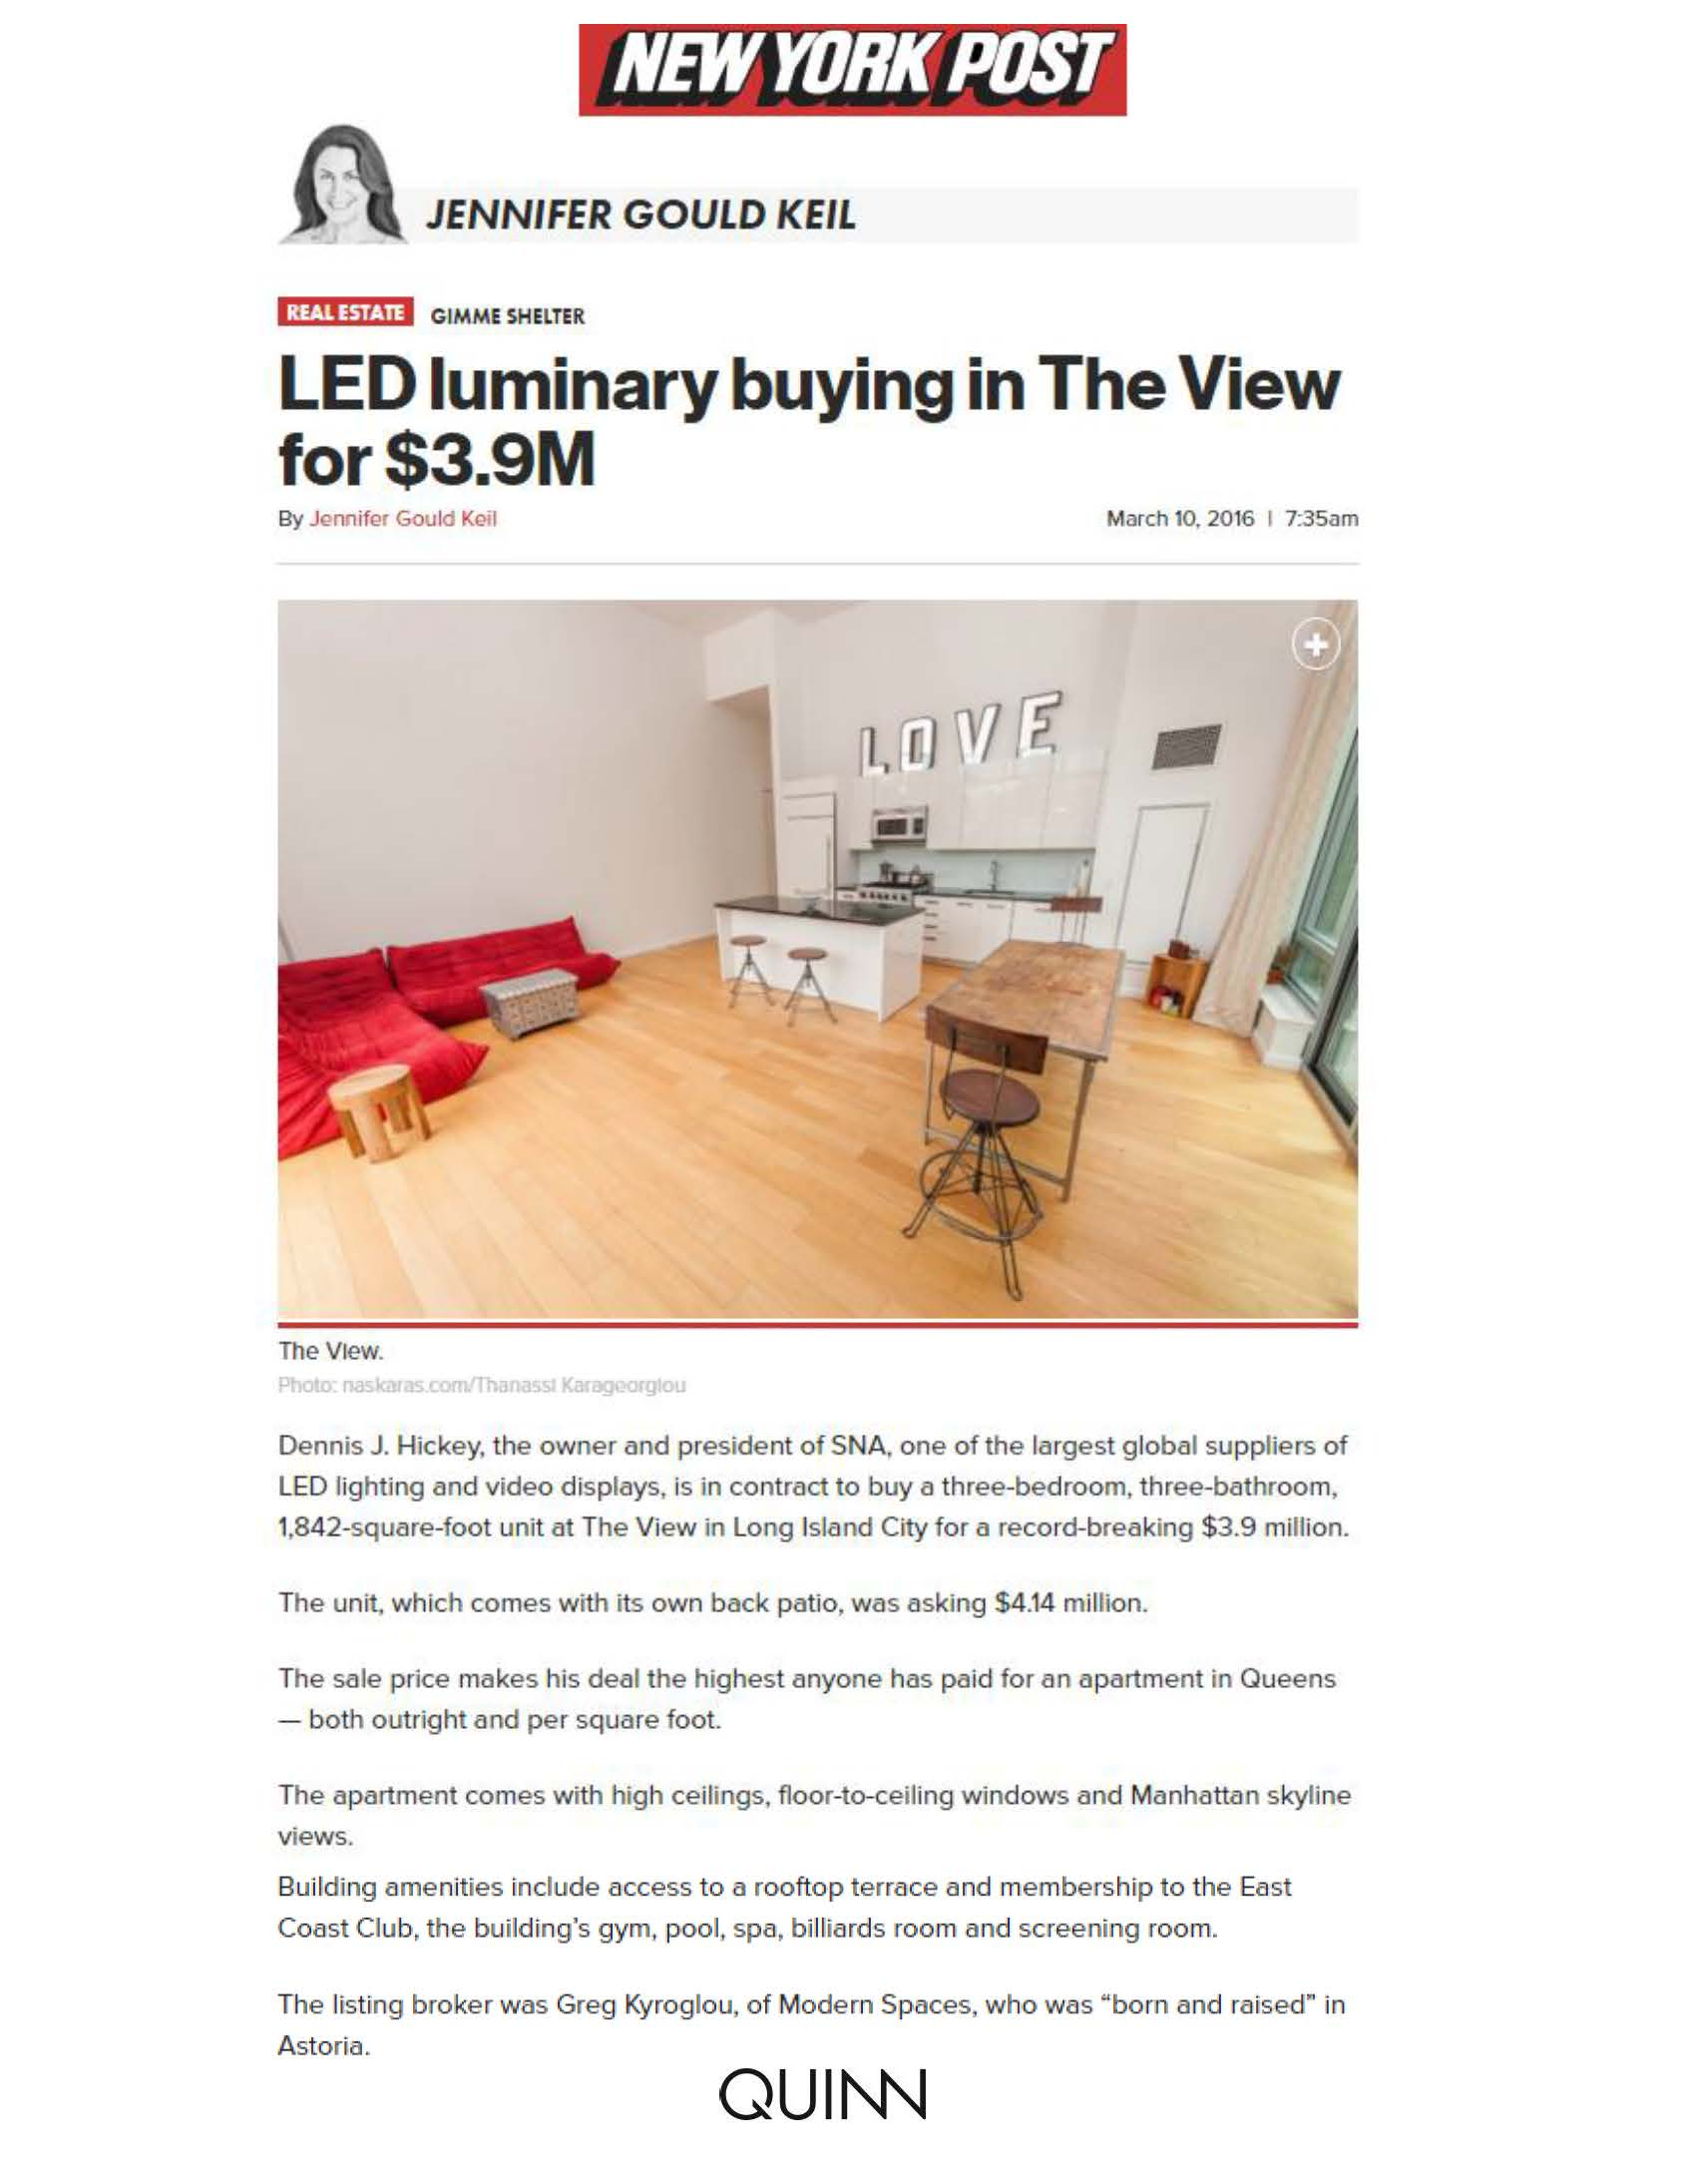 New York Post Online - LED luminary buying in The View for $3.9M - 3.10.16 (1)